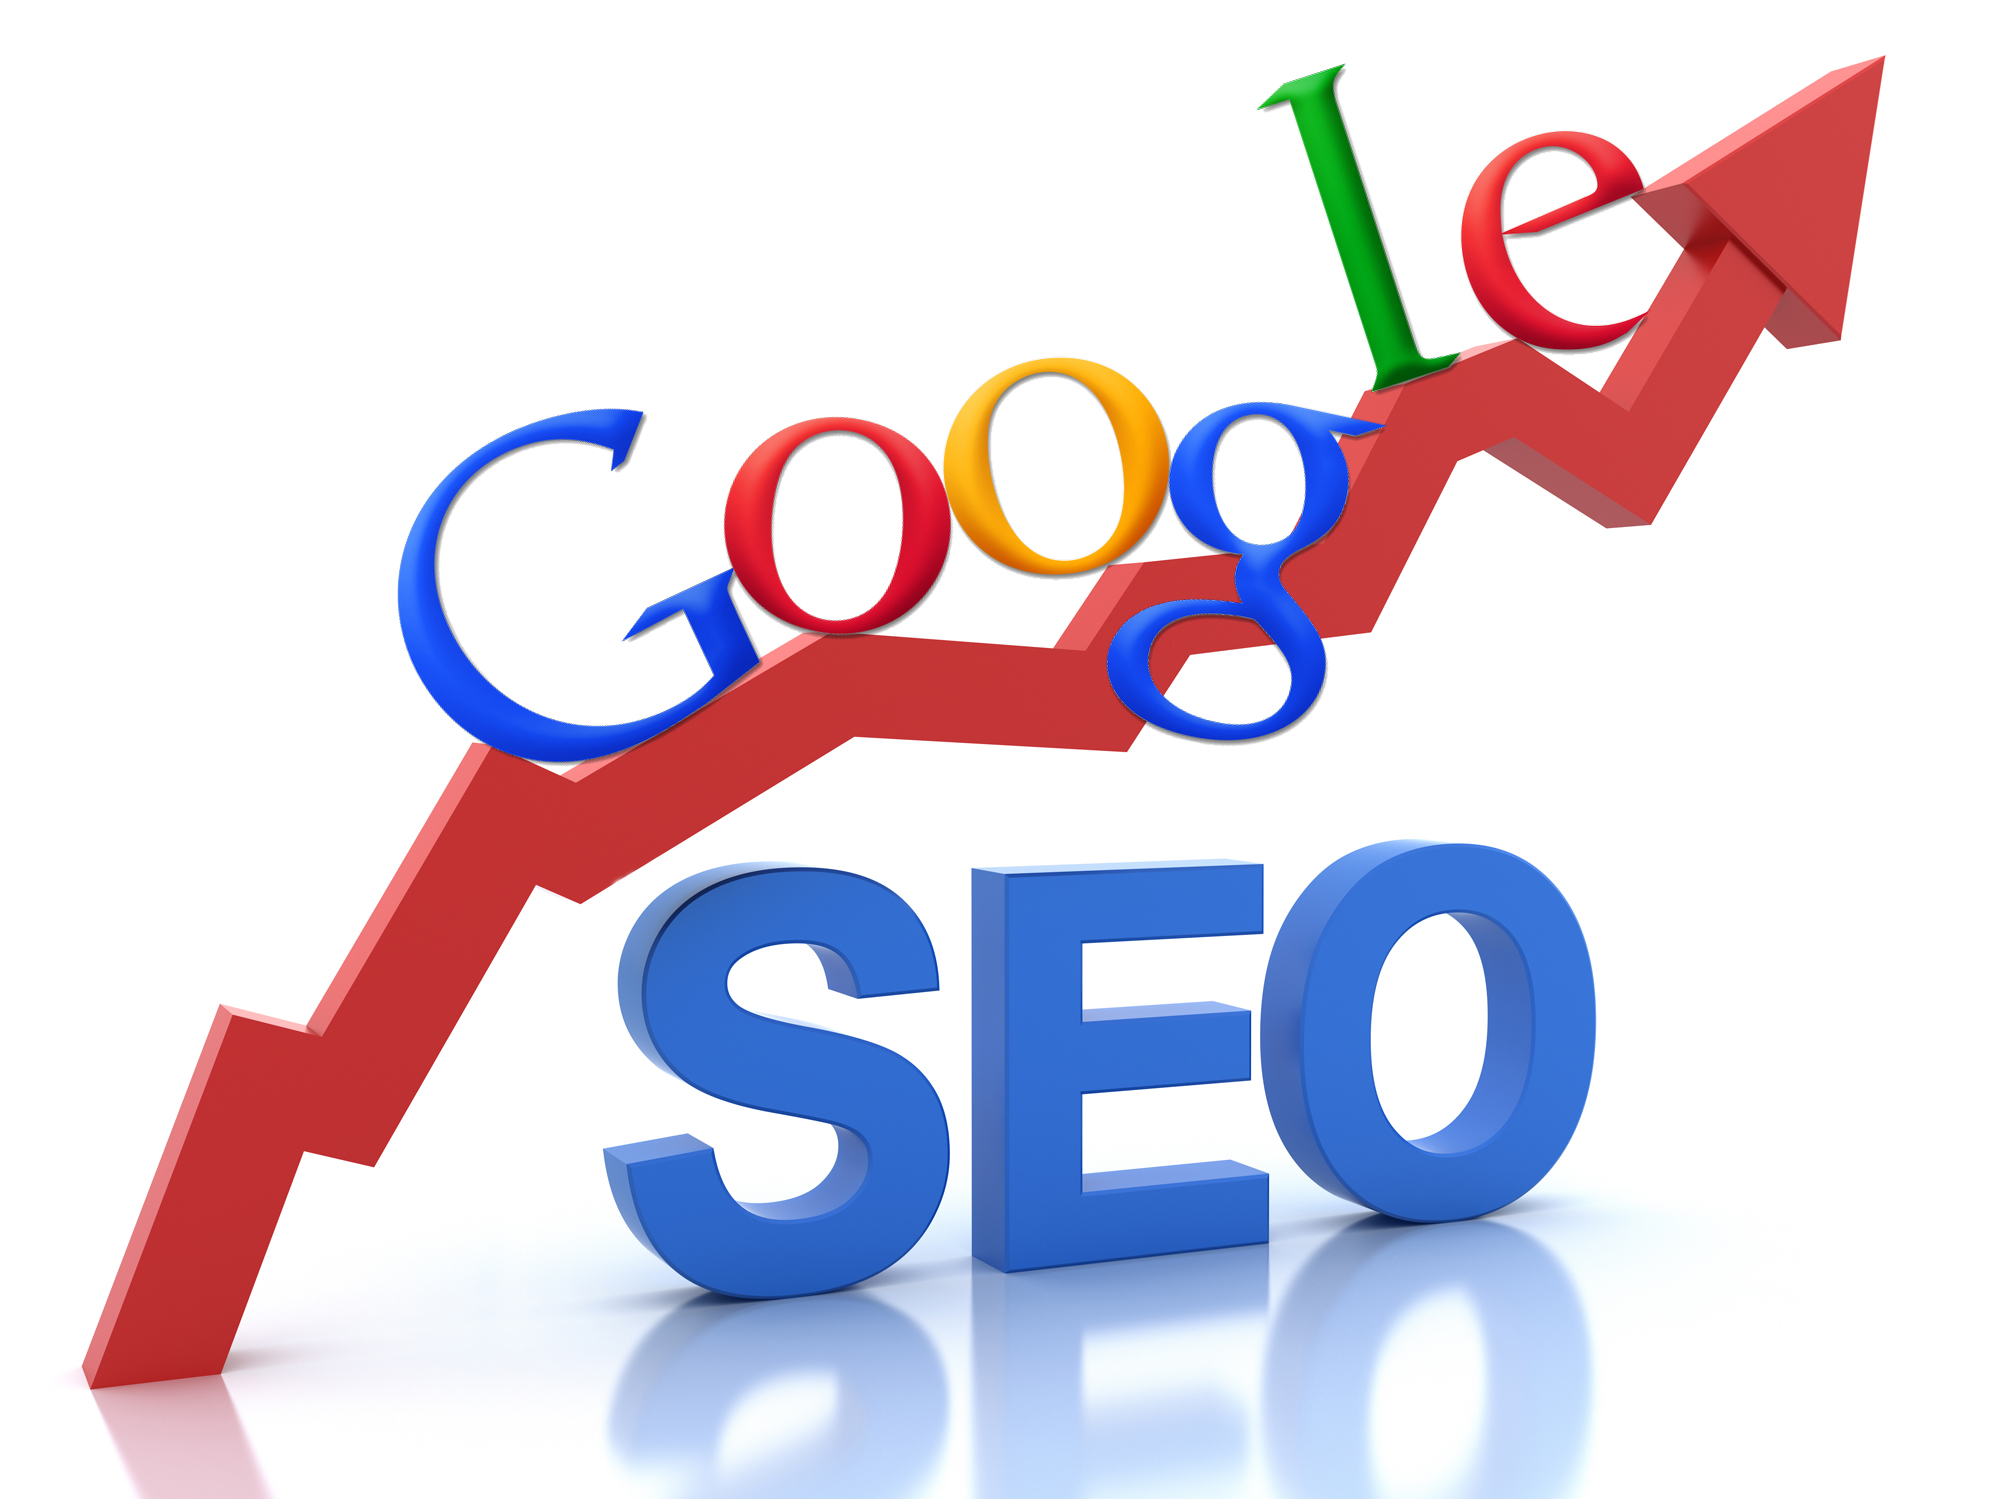 Number 1 SERVICE IS BACK NUMBER 1 SEO SERVICE BE ON GOOGLES FIRST PAGE FOR 1 YEAR